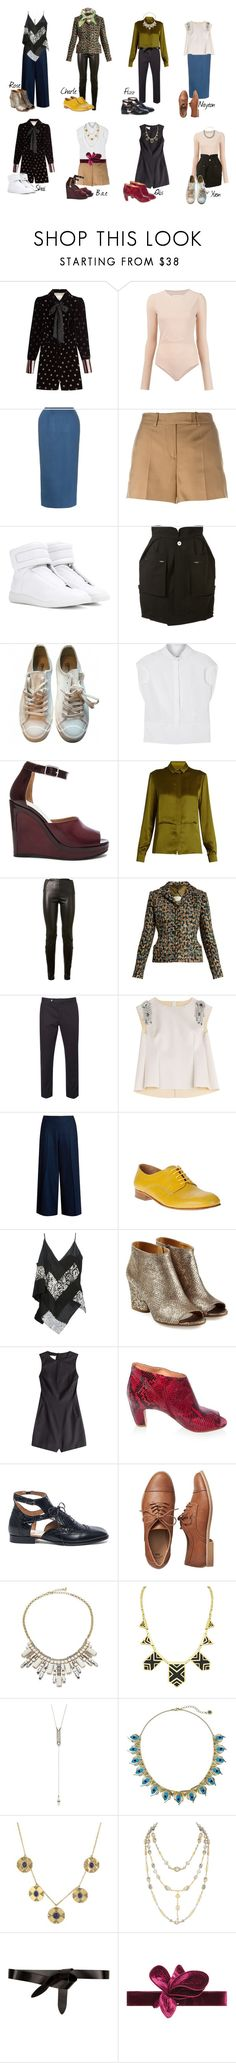 """T.R.E.N.D.Y"" by bileyuna ❤ liked on Polyvore featuring Maison Margiela, Gap, ABS by Allen Schwartz, House of Harlow 1960, Étoile Isabel Marant, Johanna Ortiz and Gucci"